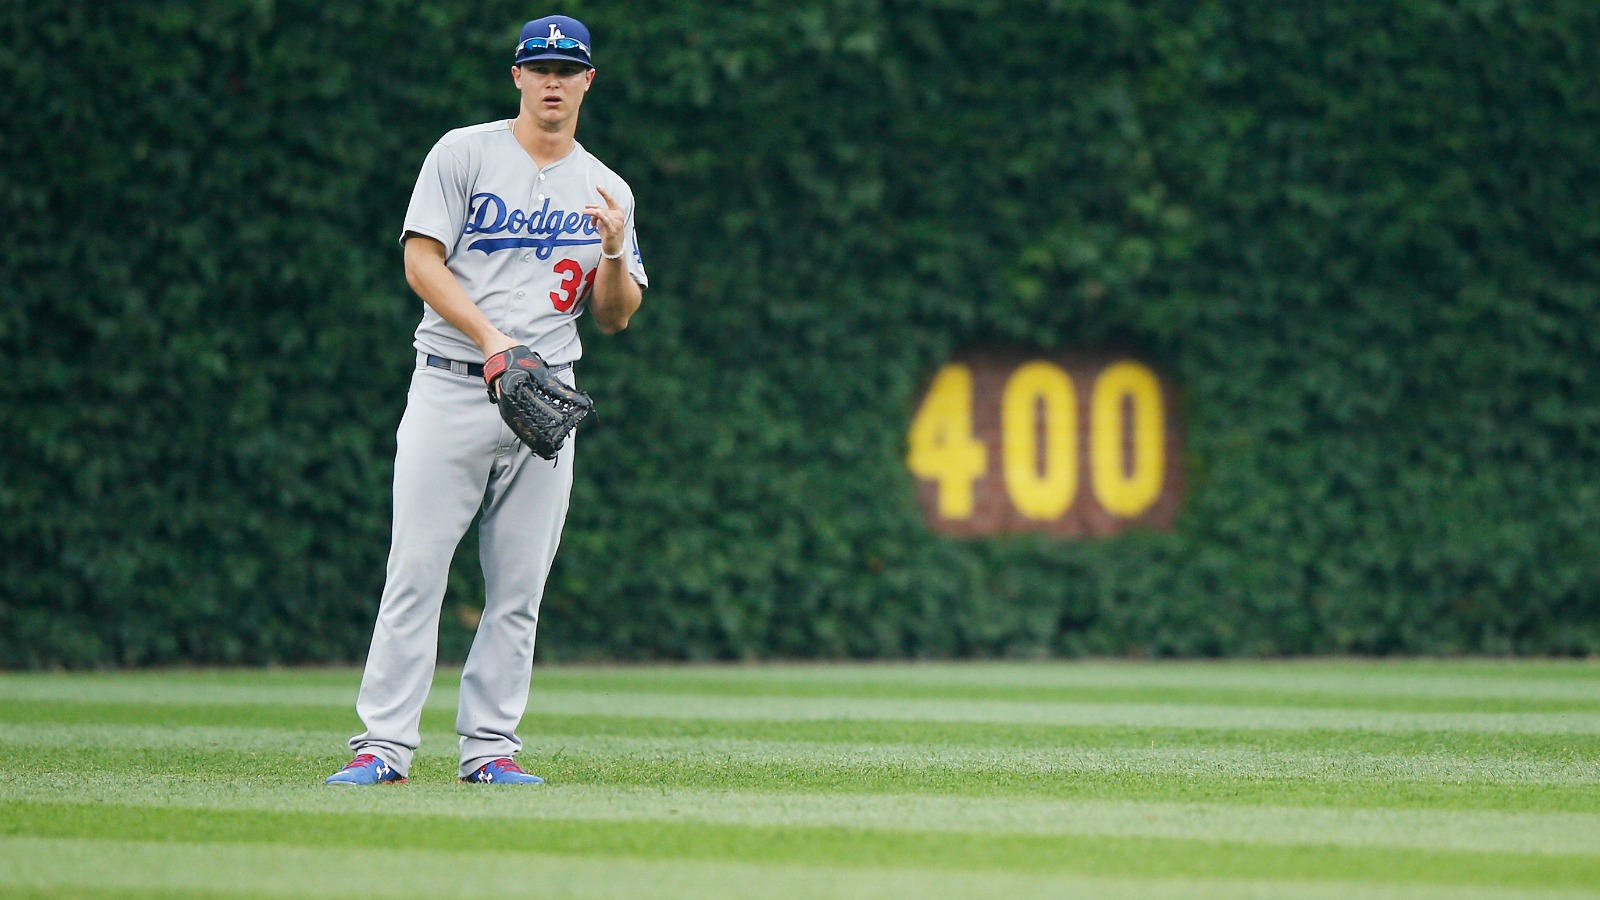 Mets are getting defensive about Dodgers' outfield tactics